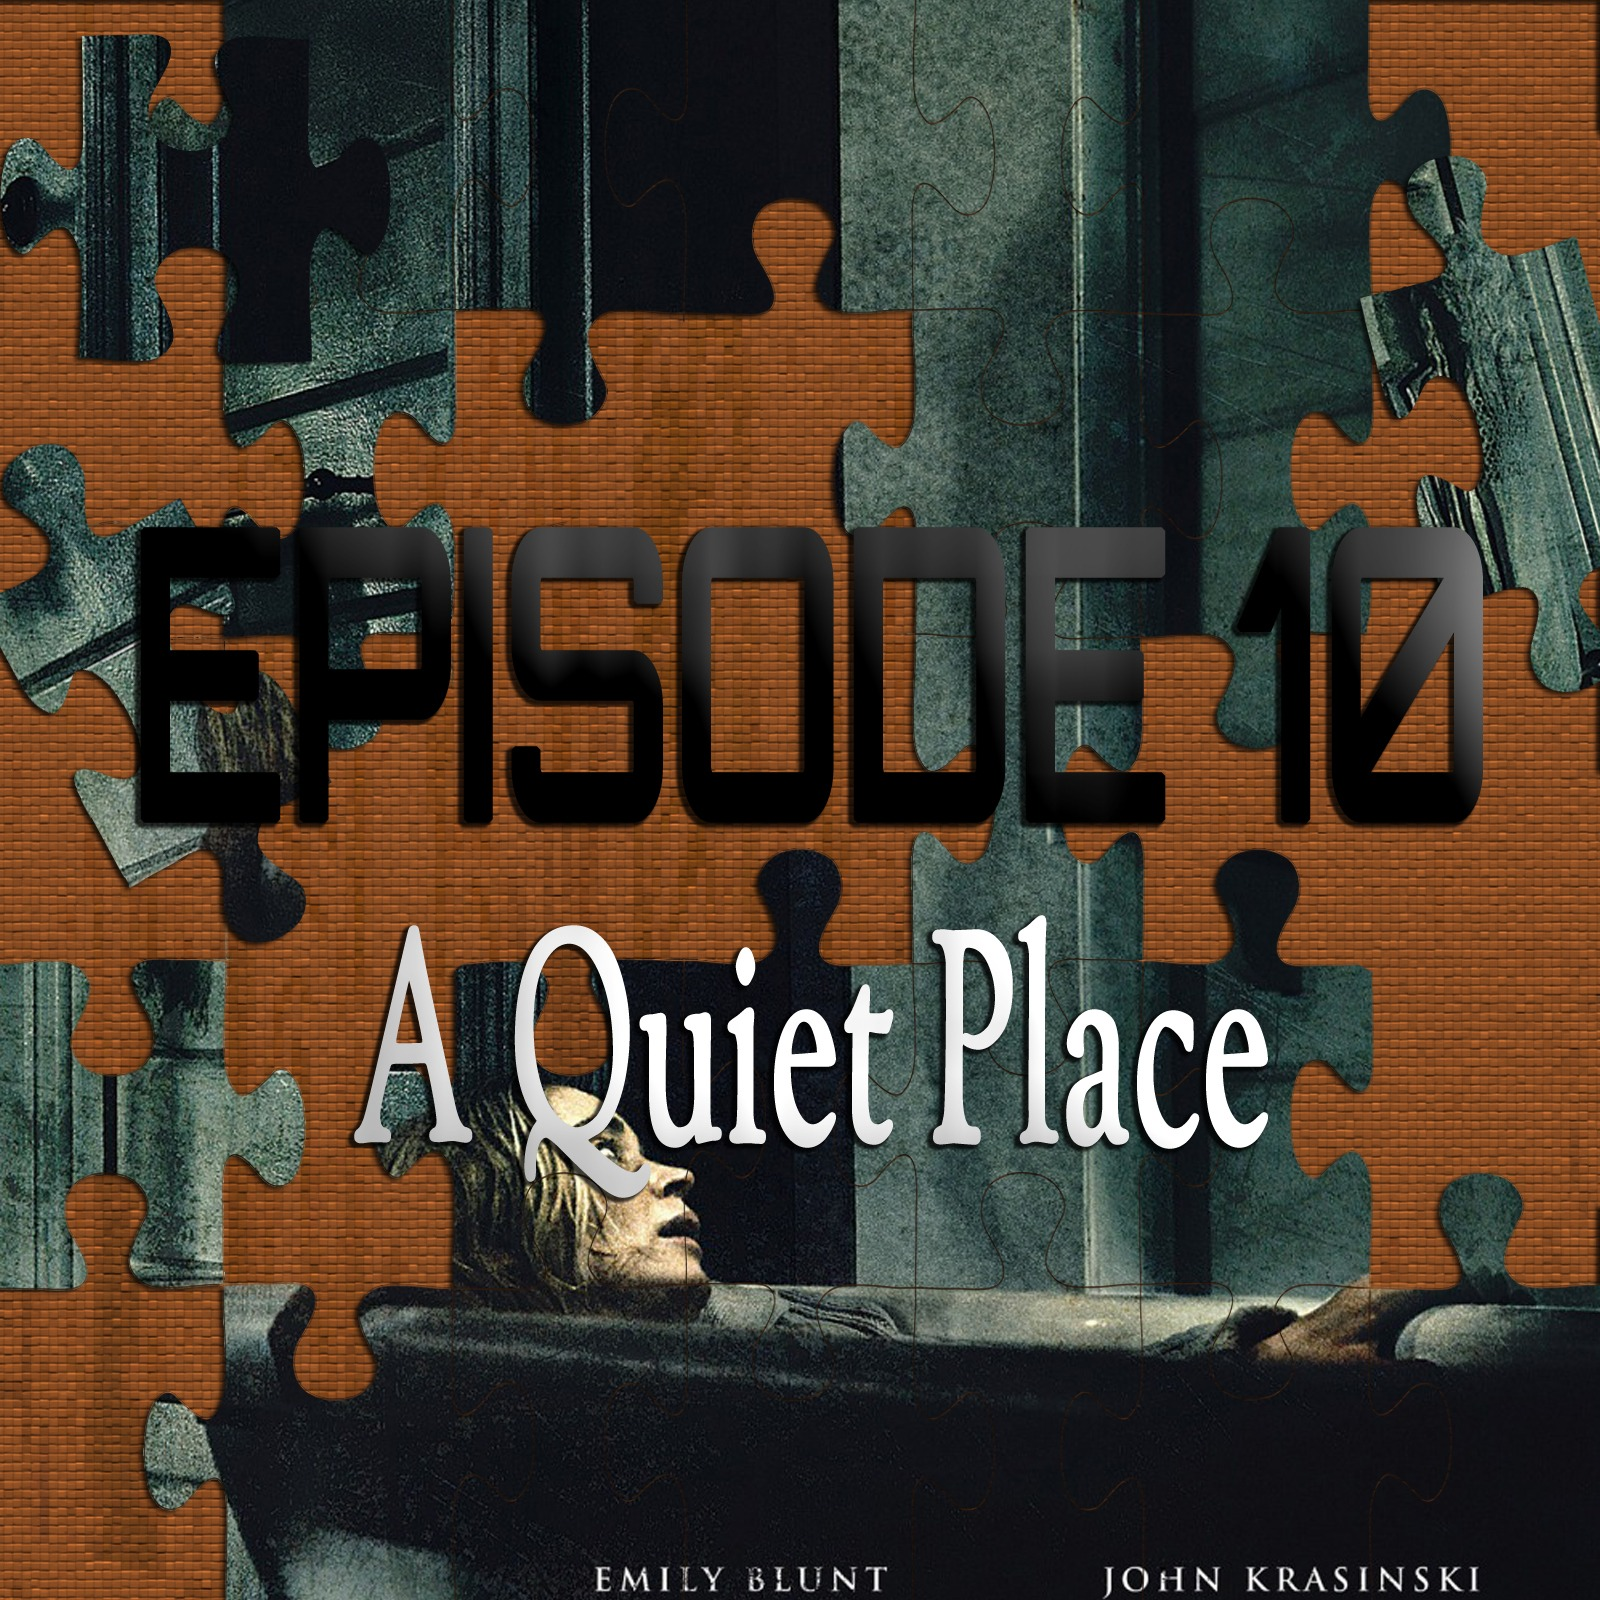 A Quiet Place (Featuring Chad Clinton Freeman)